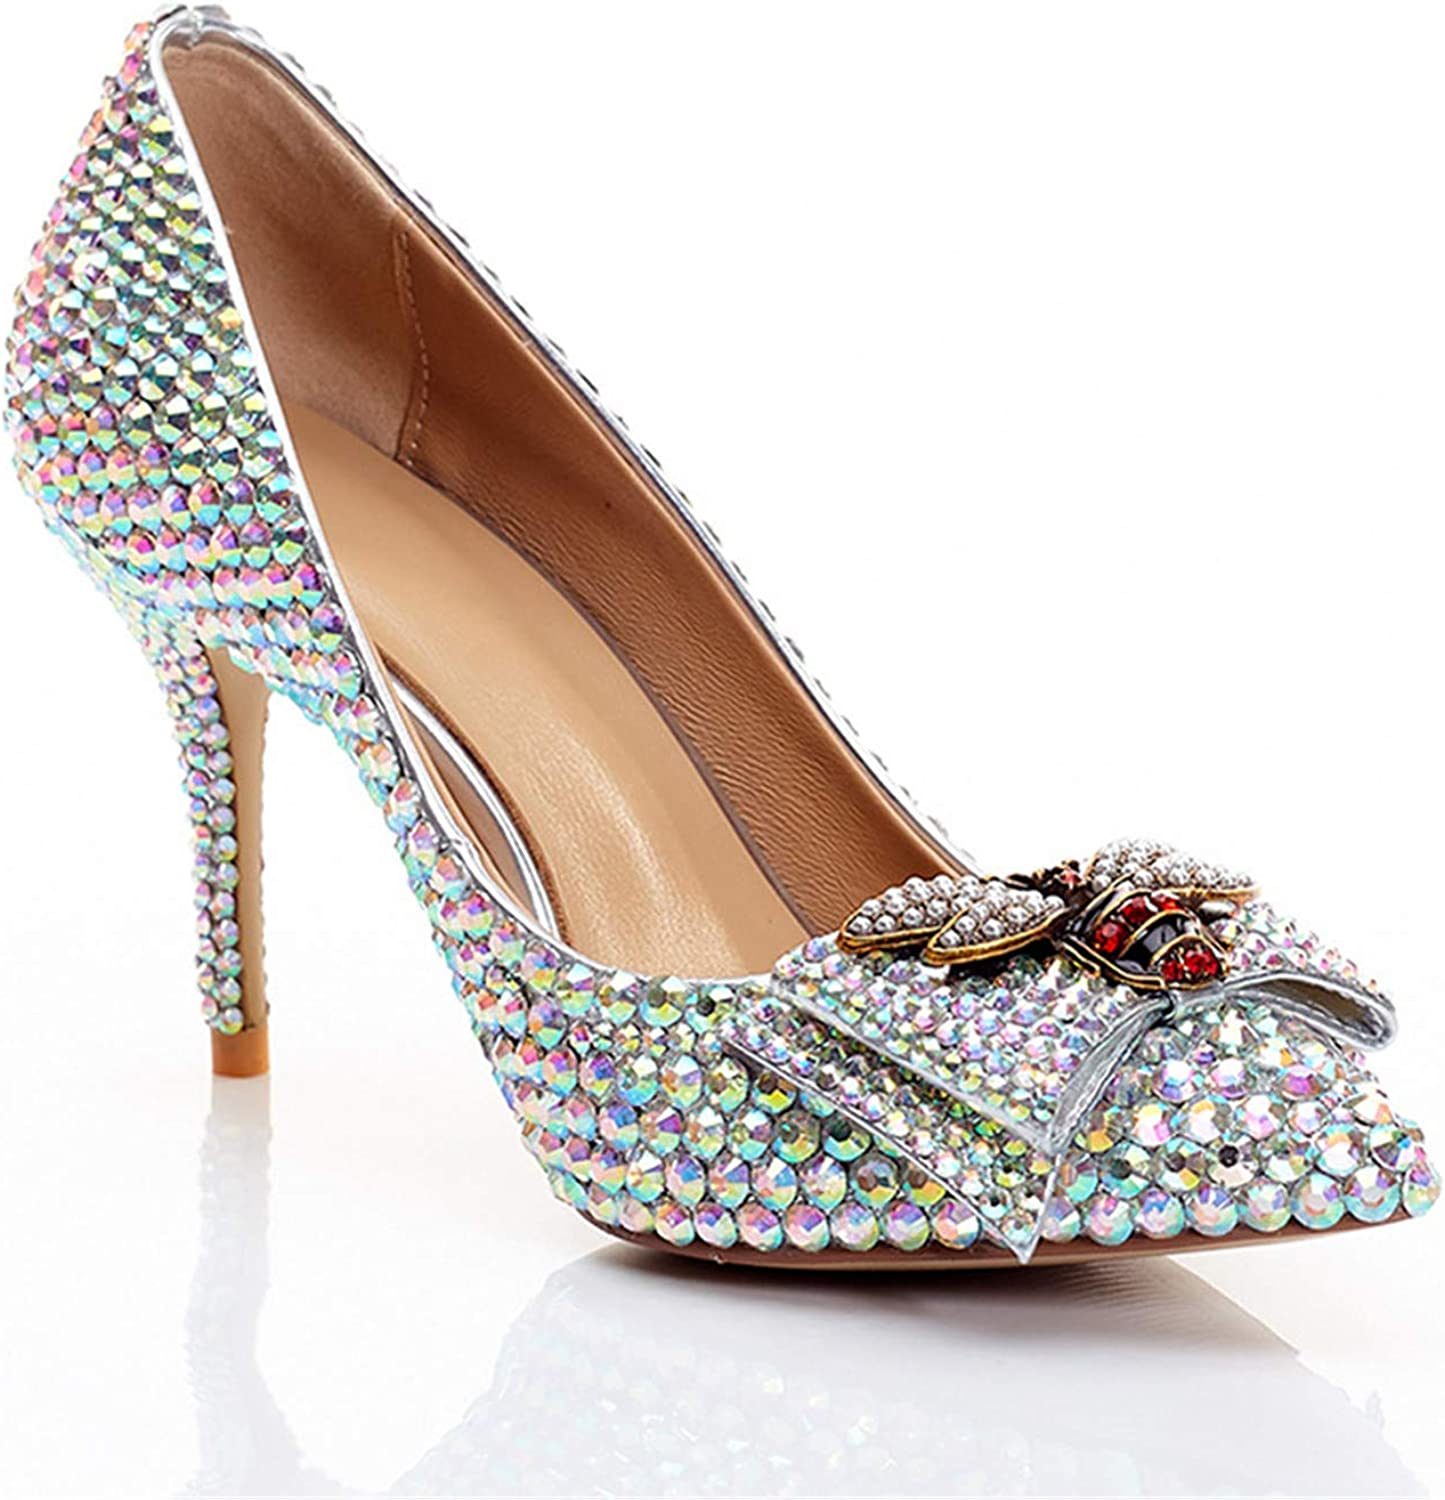 Popular Shallow Mouth High Heel Genuine Leather Wedding Womens shoes,color Rhinestone Bowknot Princess Bride Bridesmaid Fashion Pointed shoes